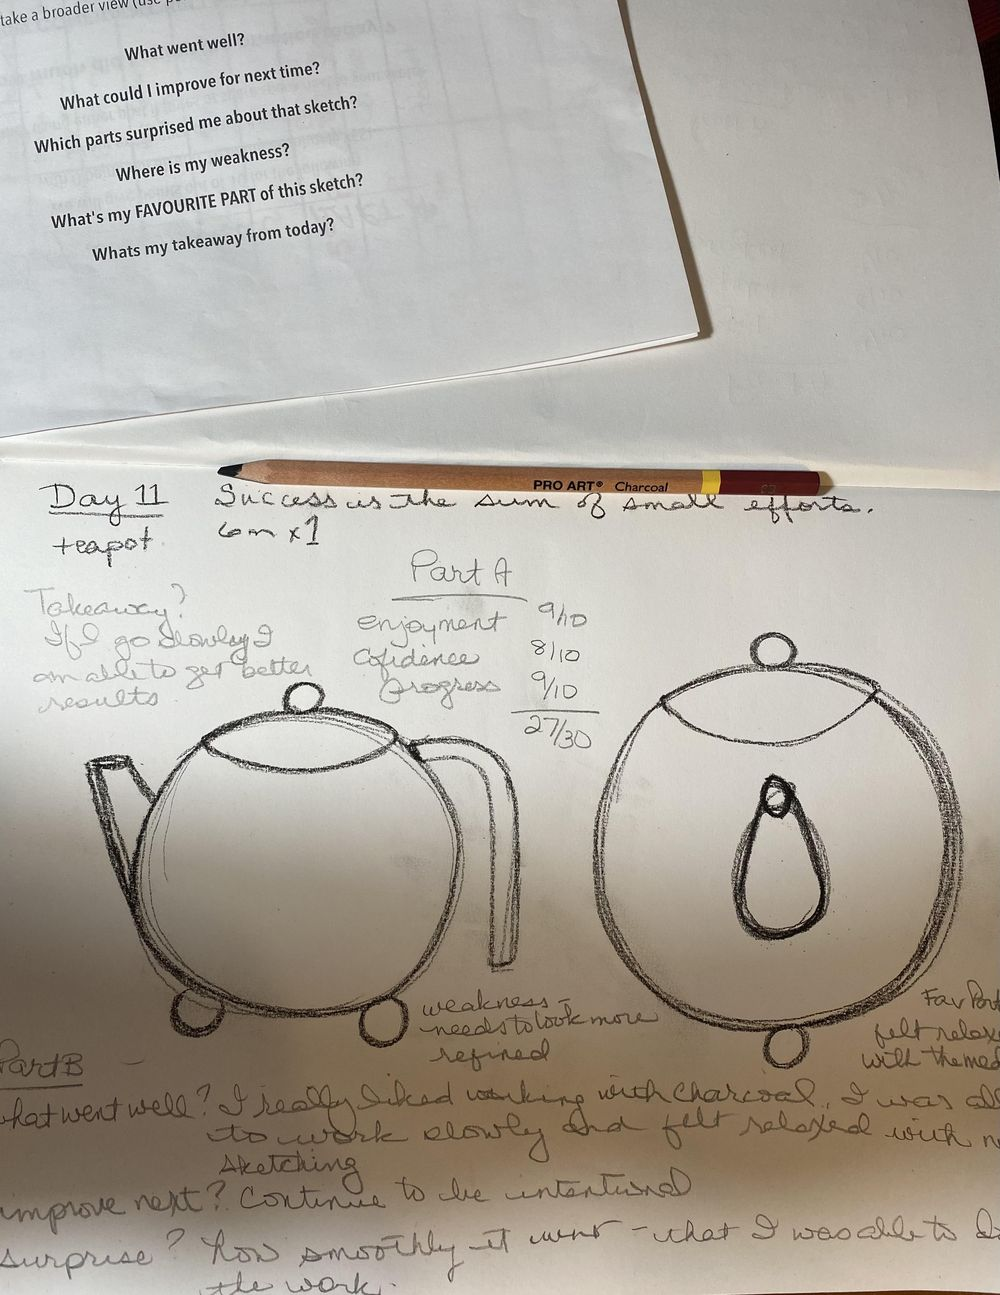 Fast Sketching!! - image 11 - student project